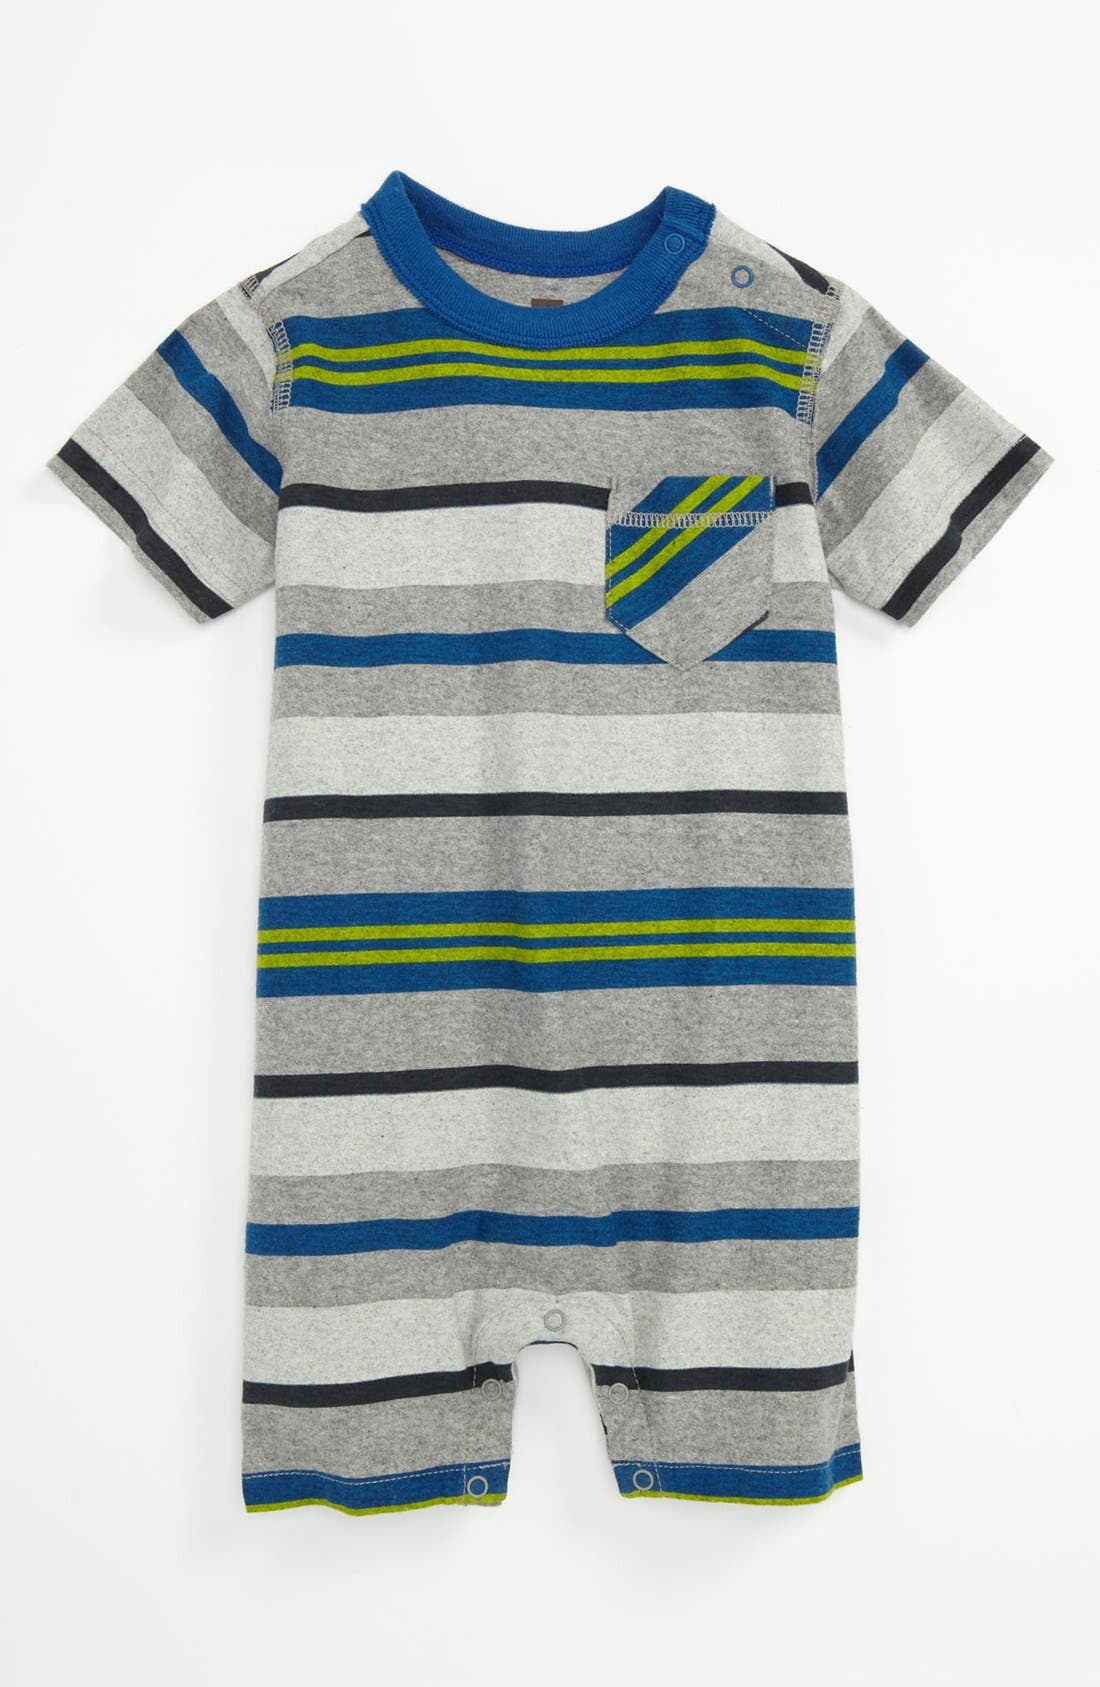 Main Image - Tea Collection 'Surf Beach' Romper (Baby)